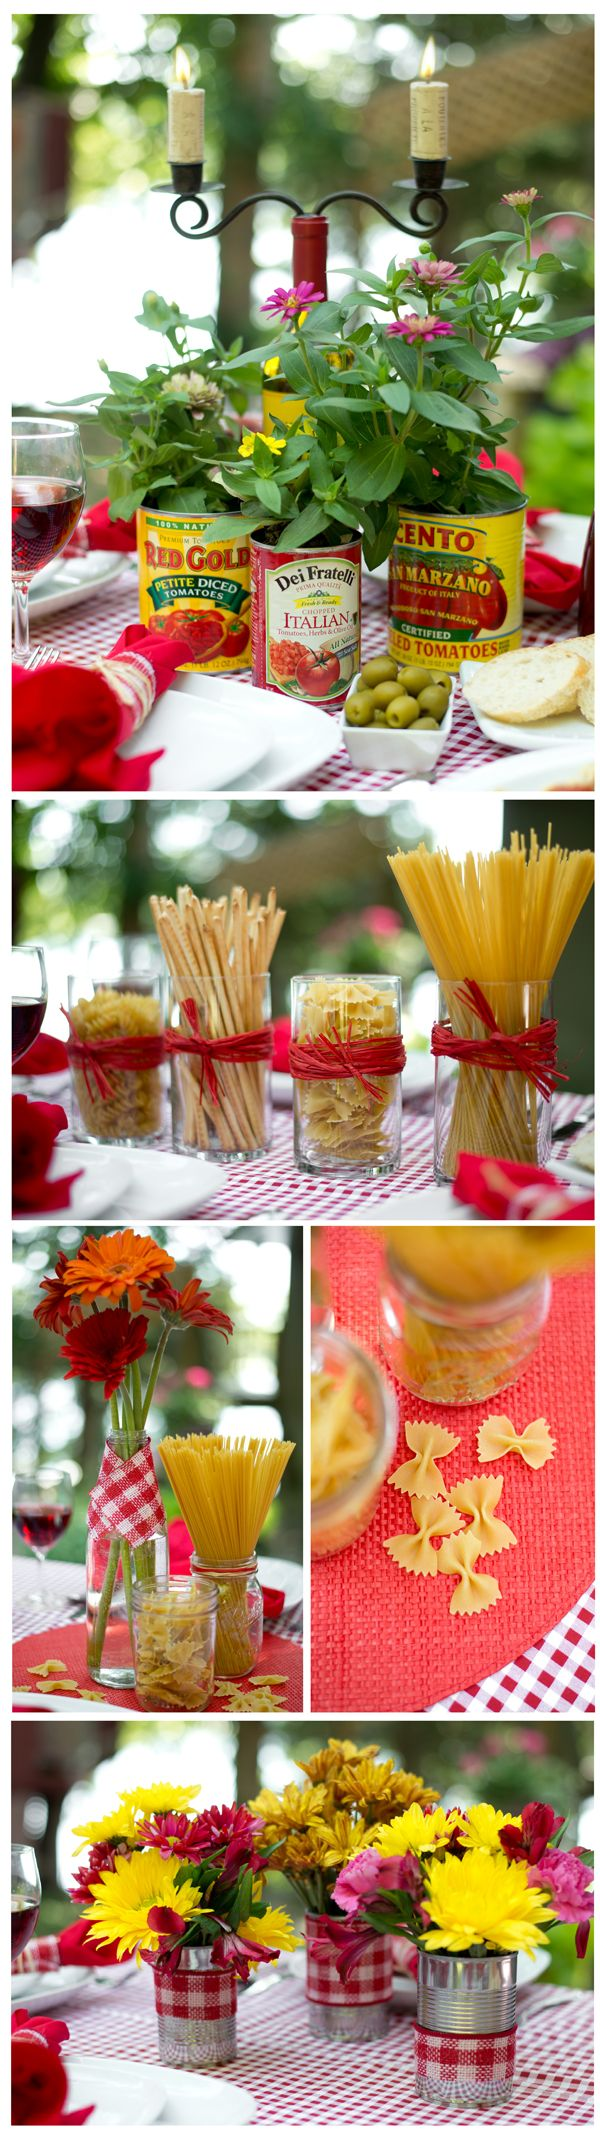 Budget Centerpiece Ideas for an Italian Dinner Theme